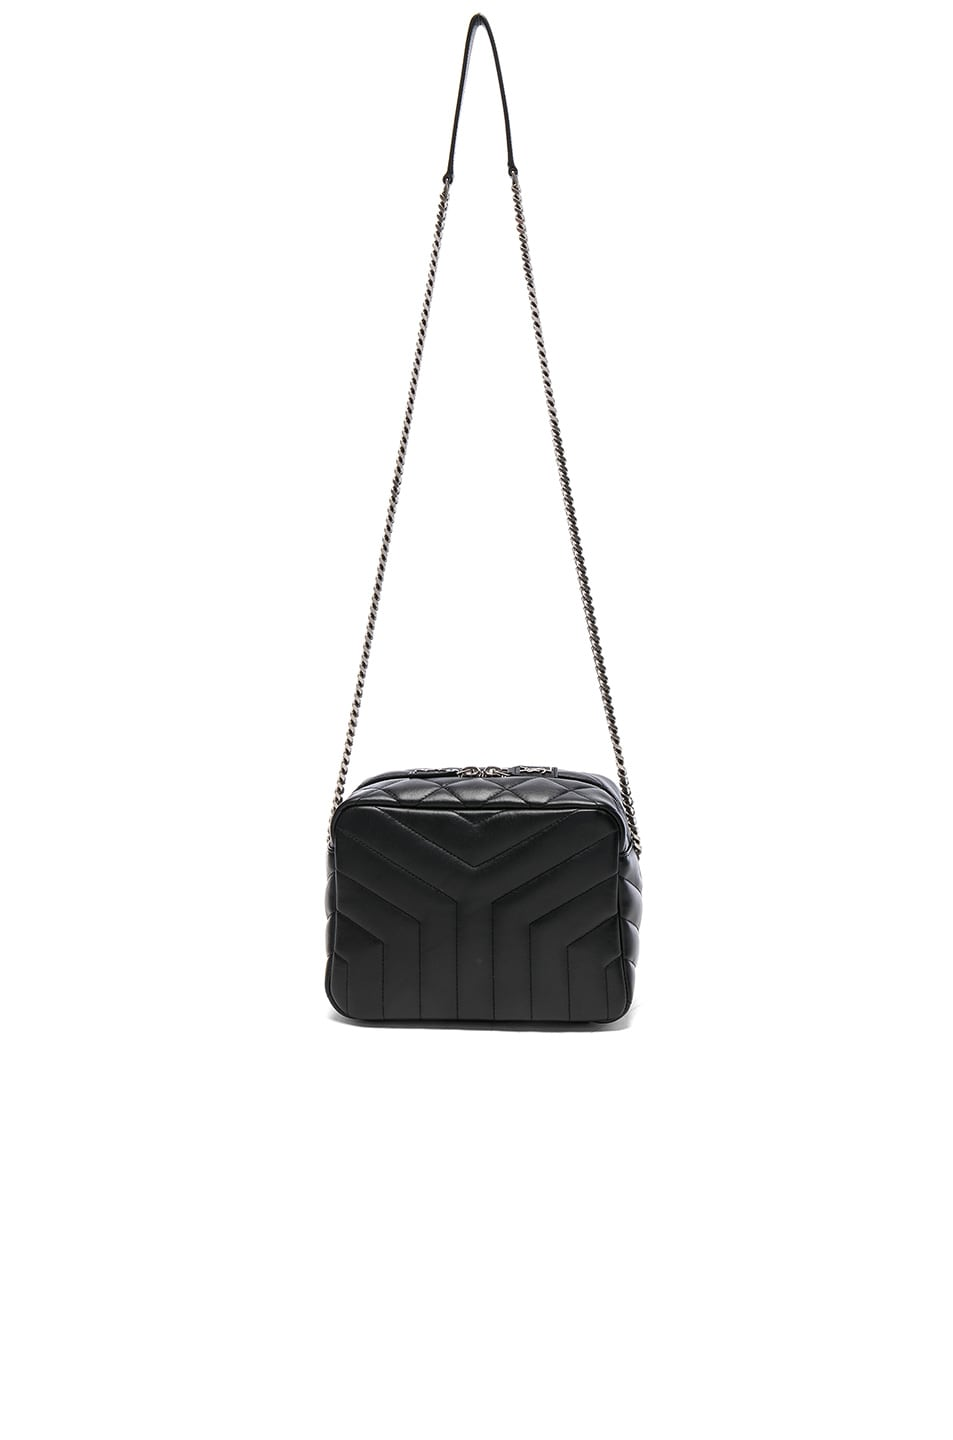 Image 5 of Saint Laurent Small Loulou Top Handle Bowling Bag in Black